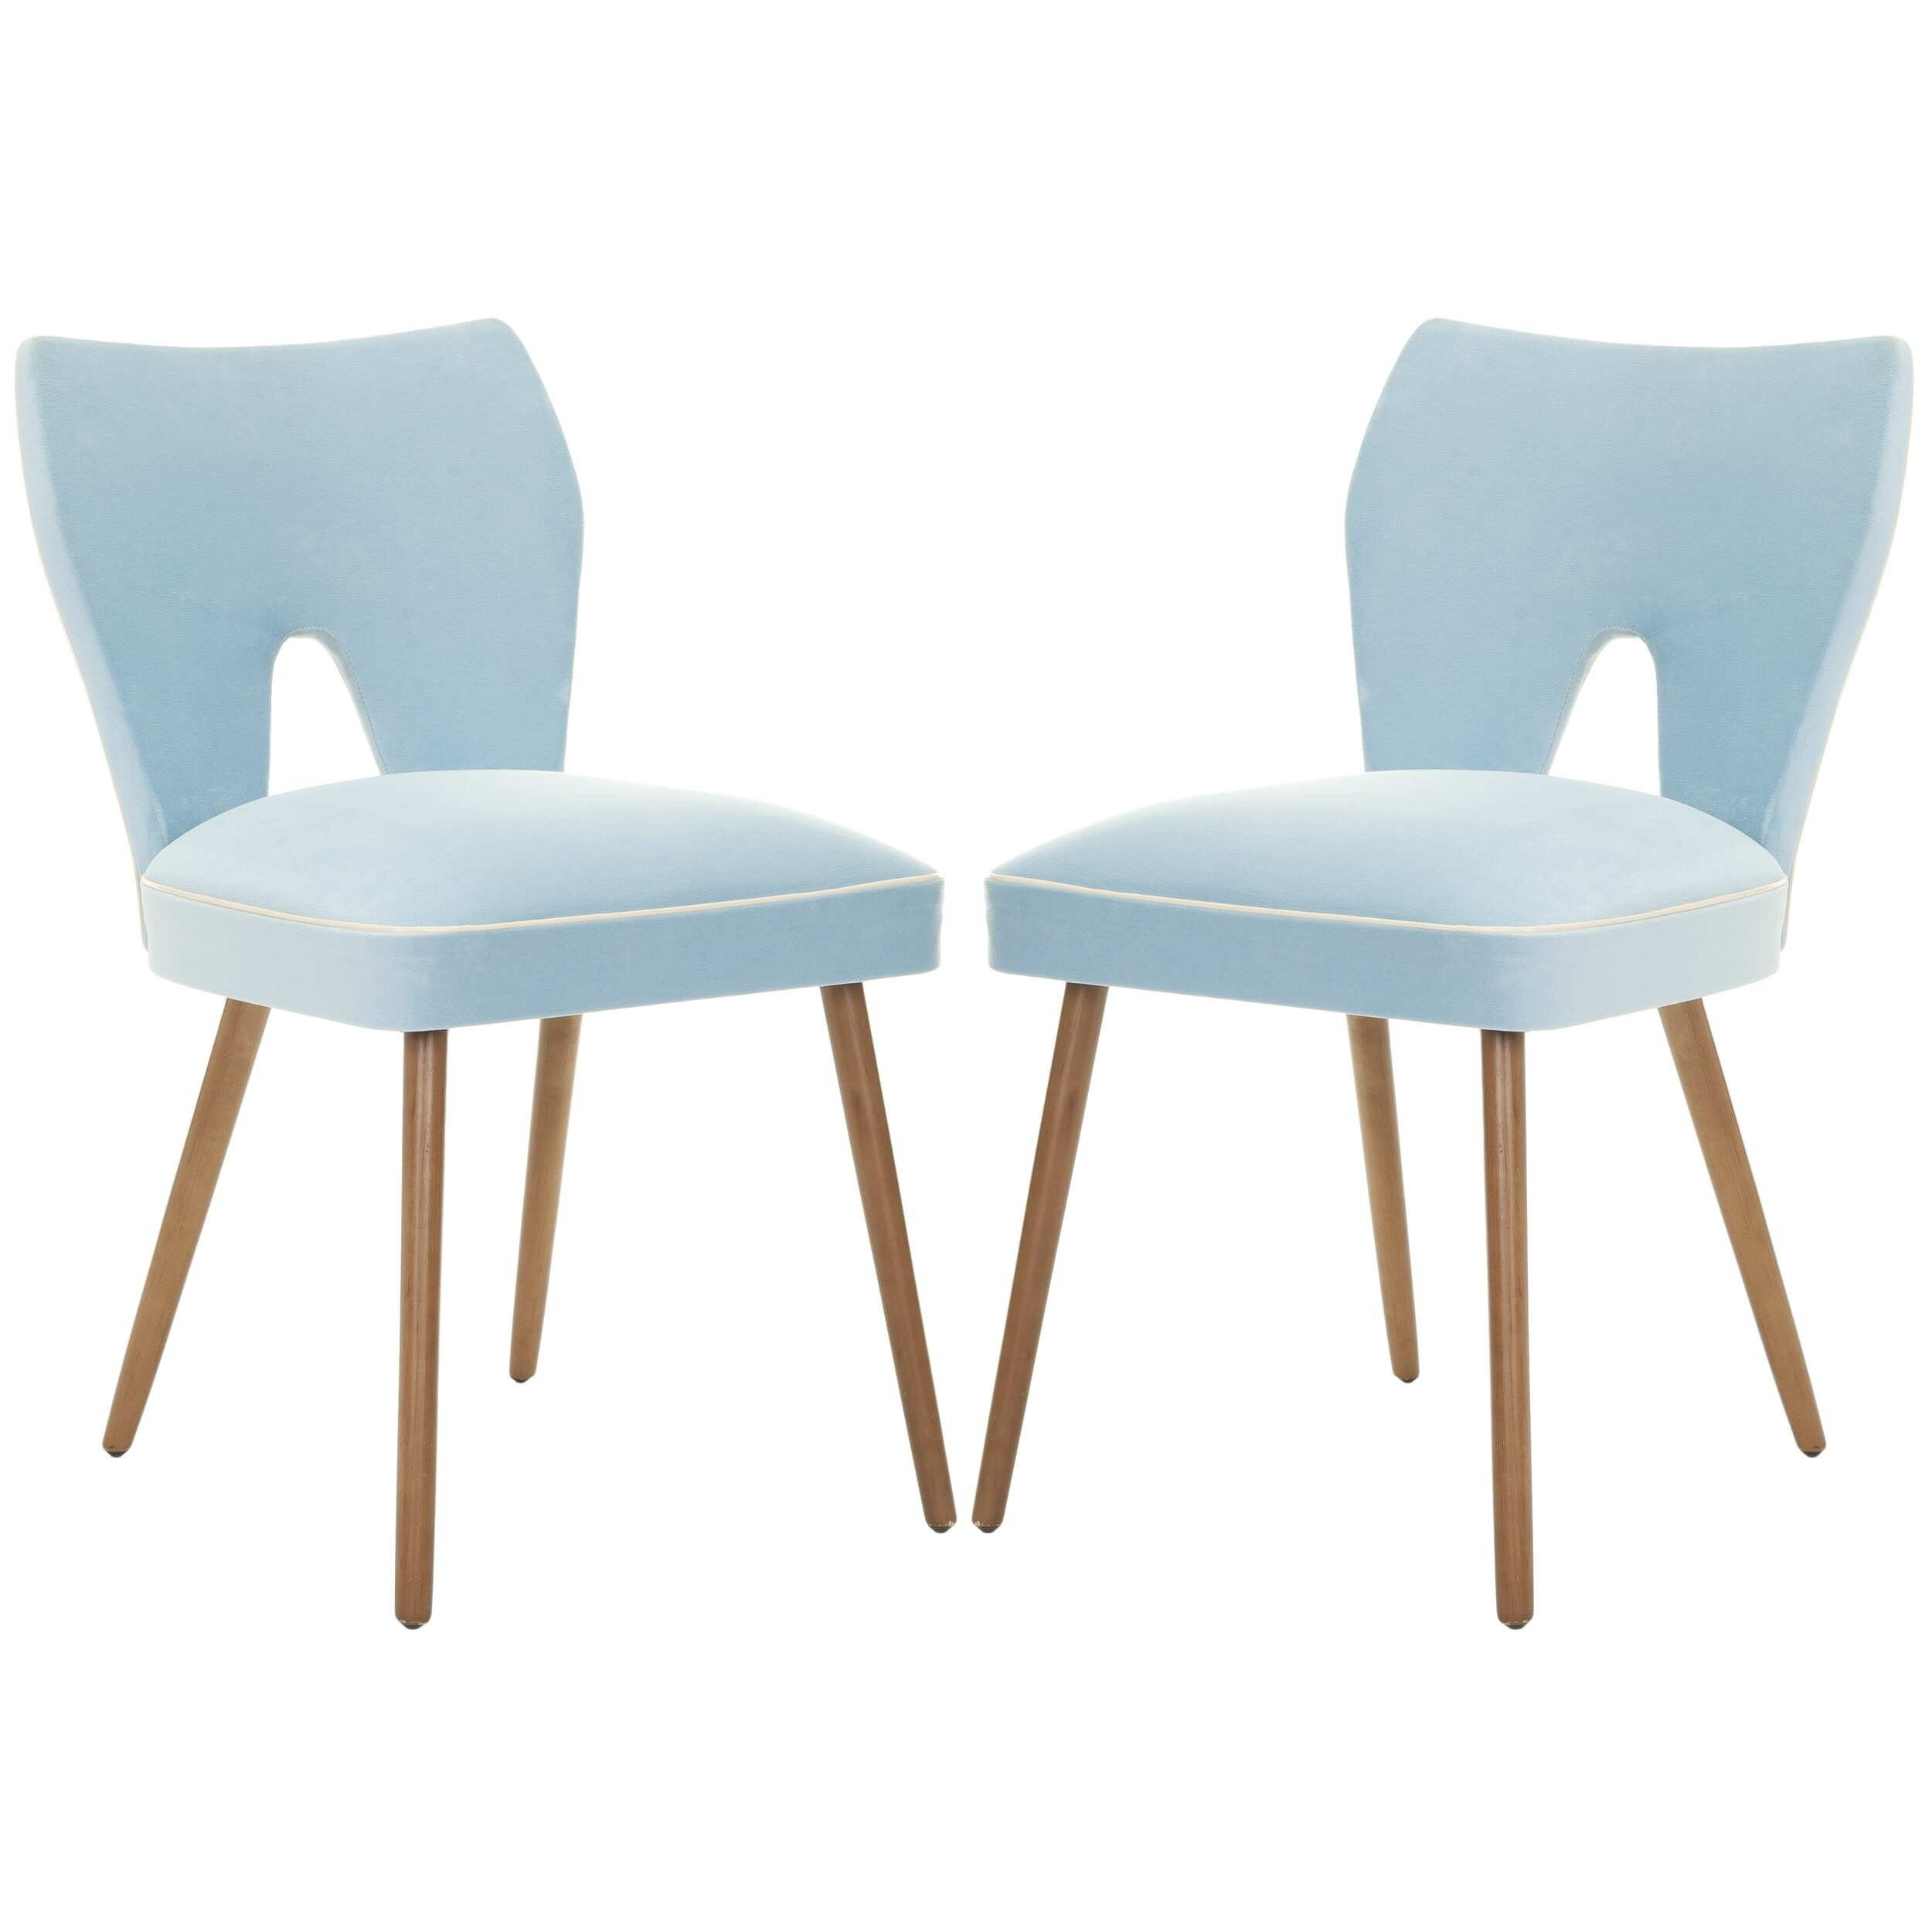 Highly Rated Blue Parson Dining Chairs Luxury files ‹ daarufo